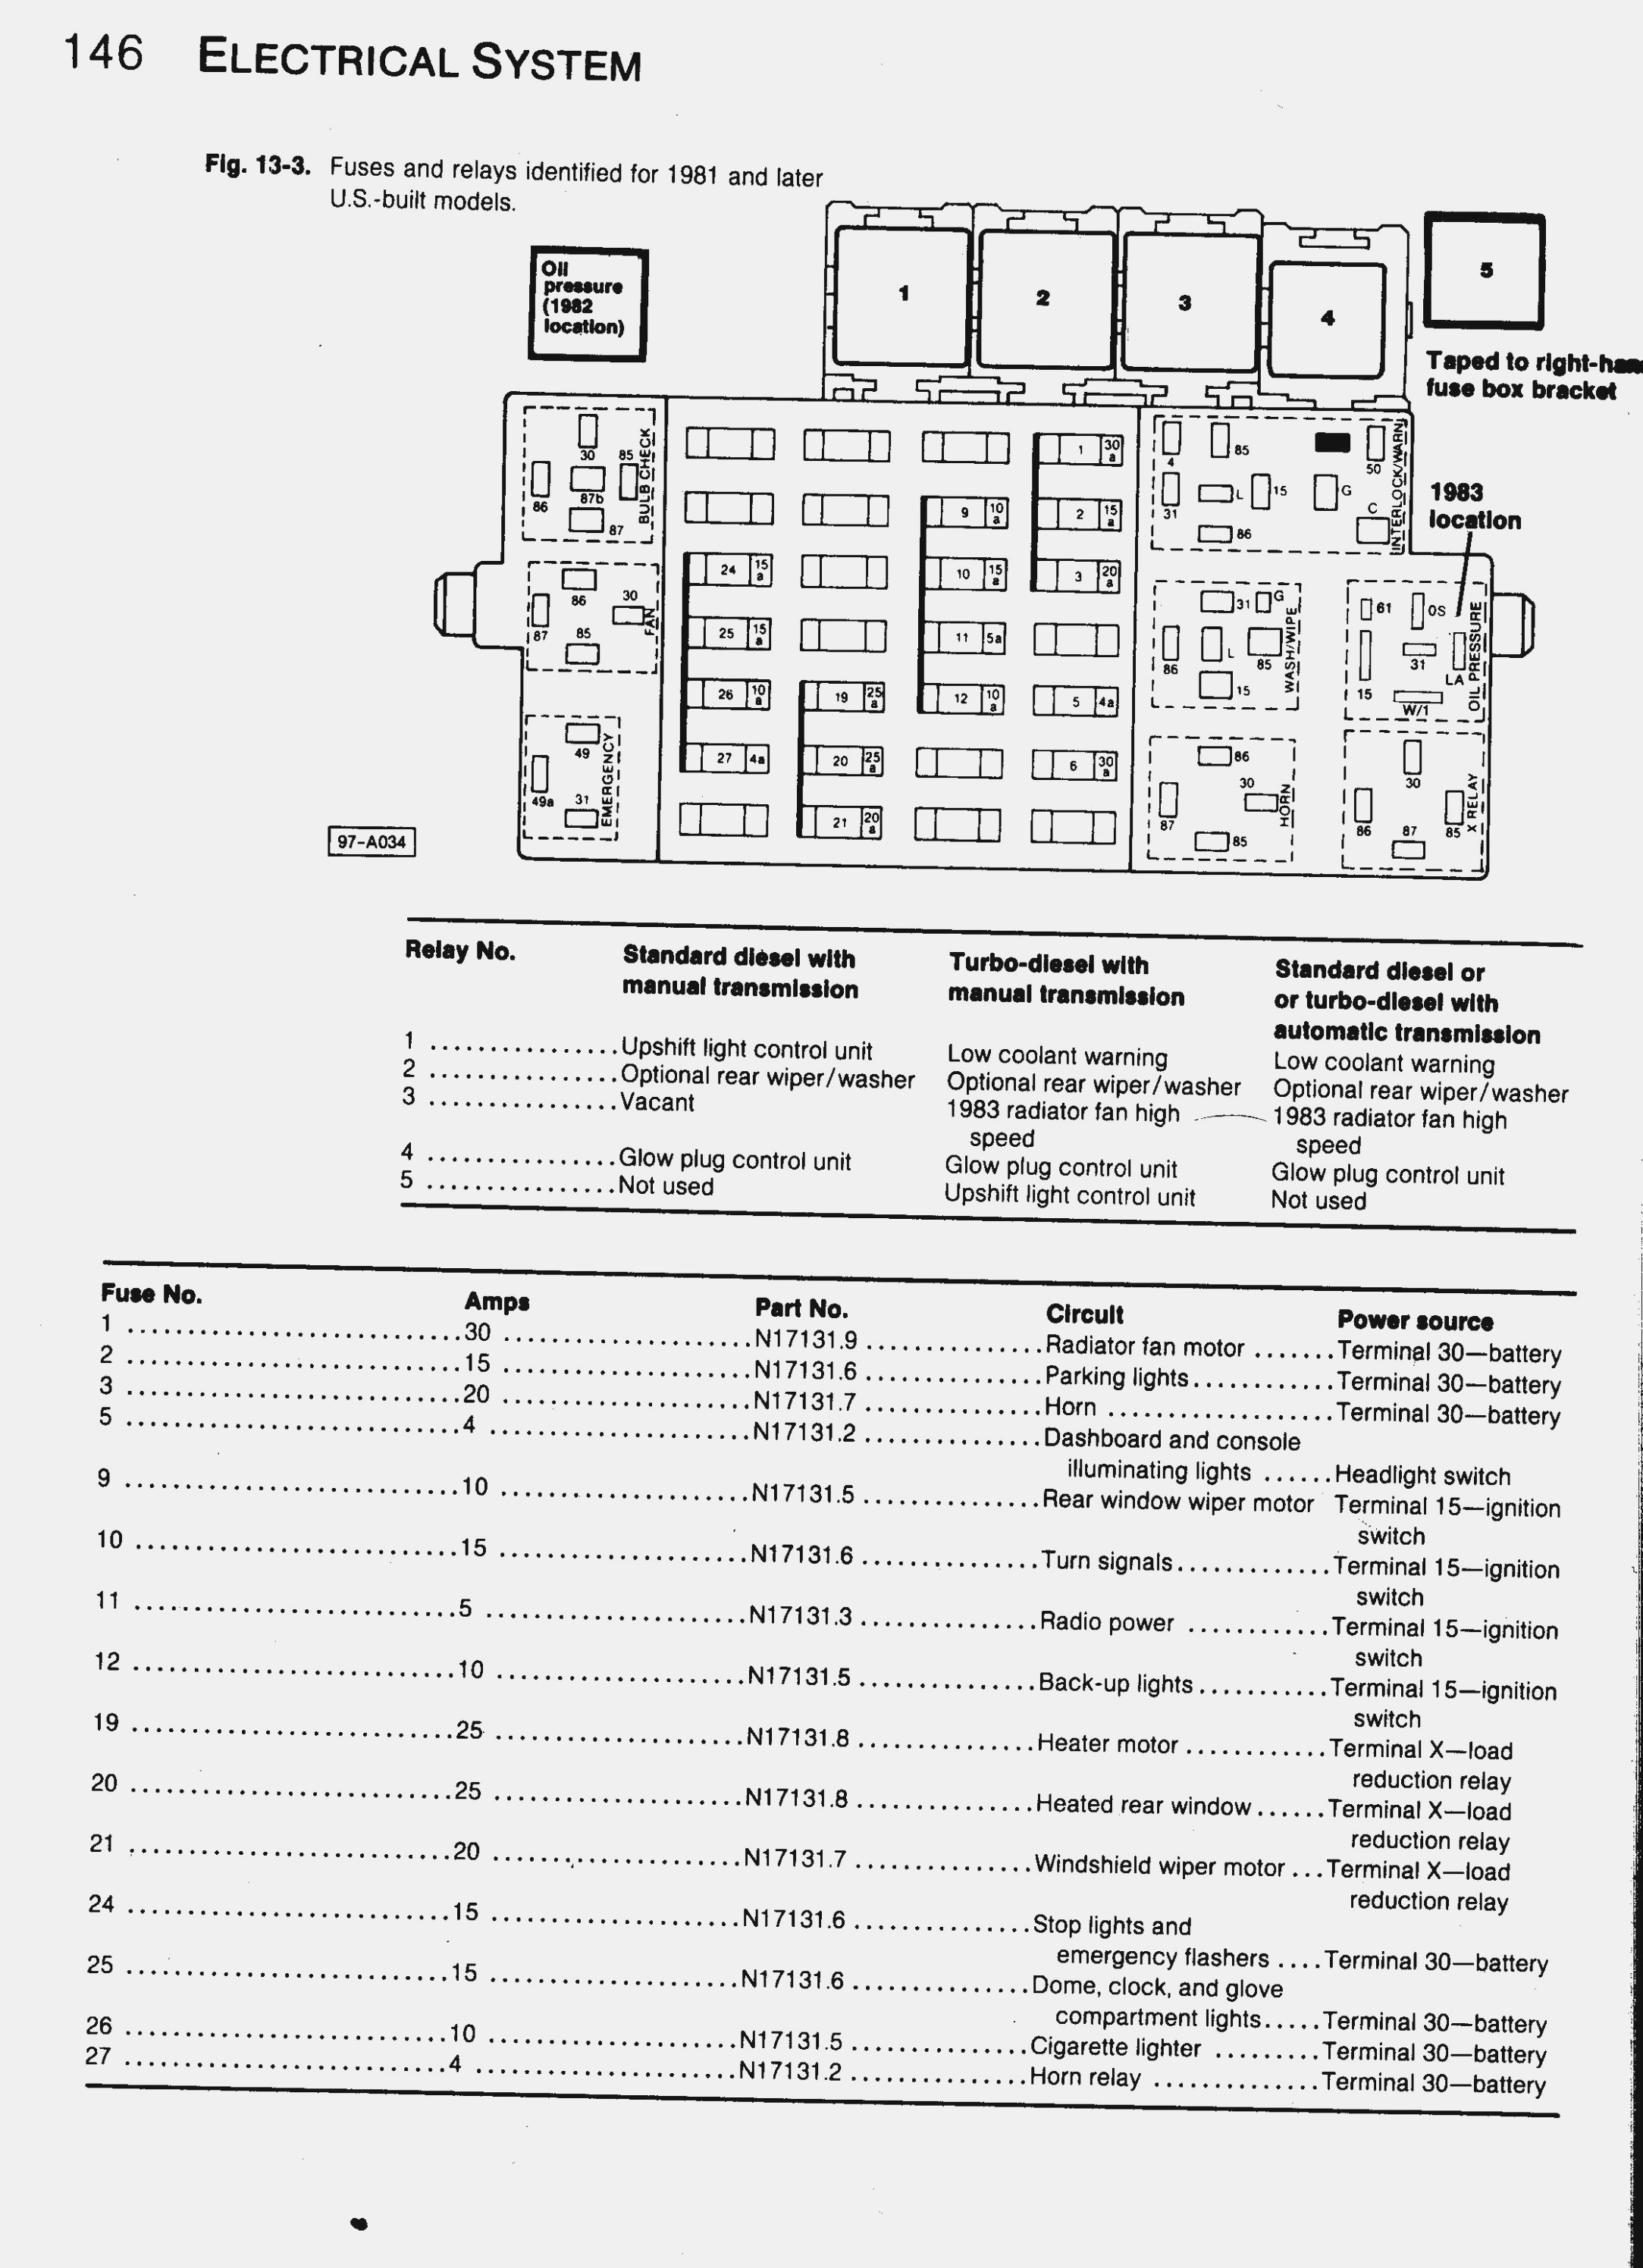 International Truck Fuse Panel Diagram International 8100 Fuse Diagram Wiring Diagram toolbox Of International Truck Fuse Panel Diagram 1991 Plymouth Acclaim Fuse Box Diagram